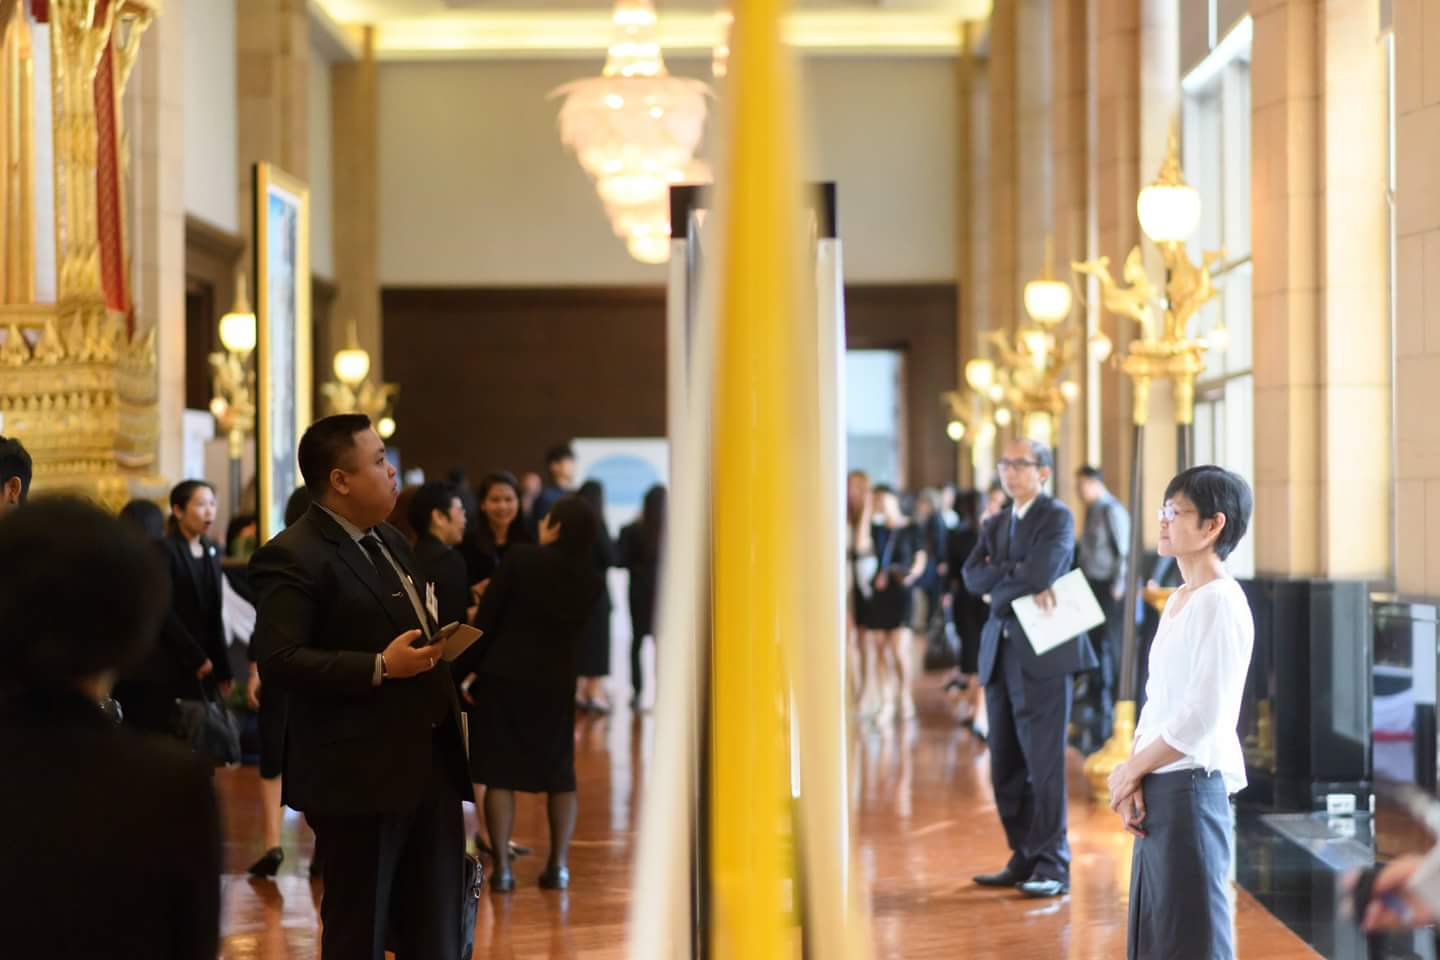 The '60 years Thai-German Partnership for Sustainable Development' Exhibition